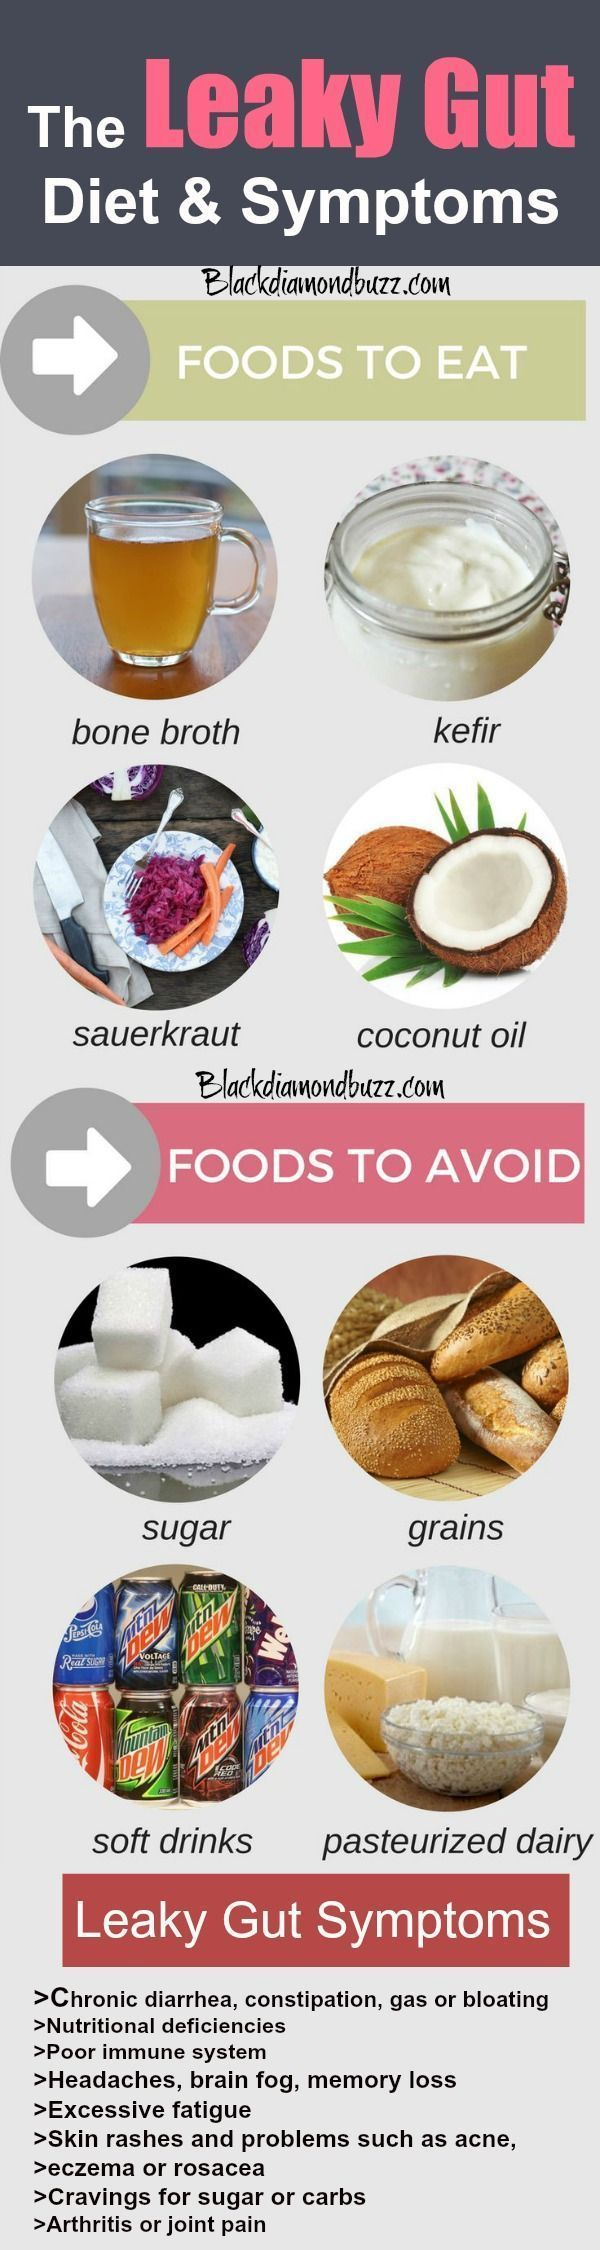 288 best Leaky Gut images on Pinterest | Best healthy recipes, Cyclical ketogenic diet and ...